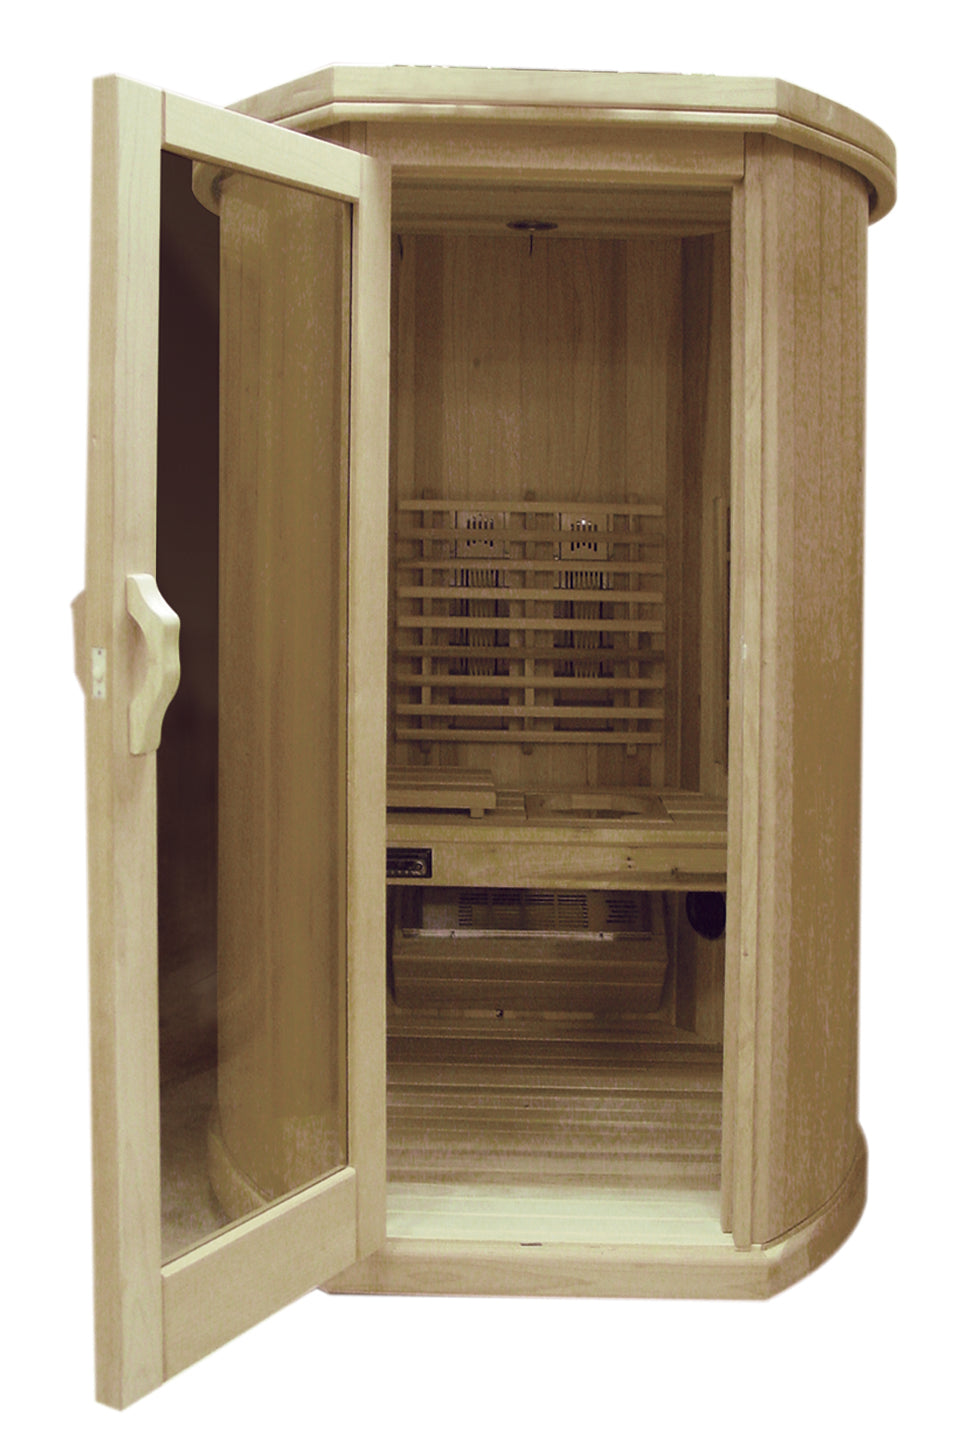 Infrarcore InfraMAX Infrared Sauna (4-8 Week Lead Time)